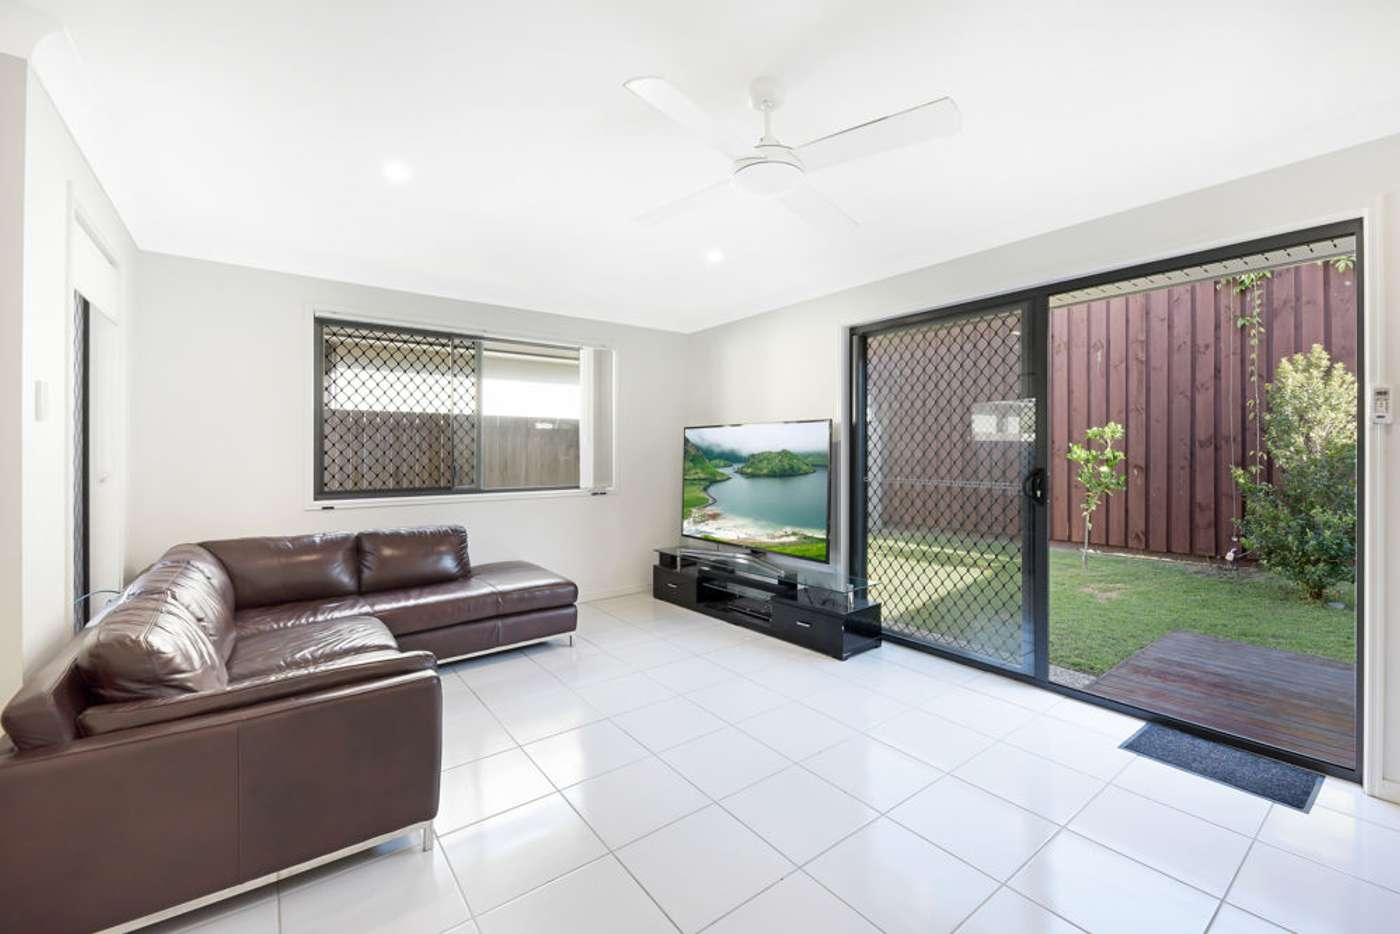 Sixth view of Homely house listing, 10 Gumtree Pocket Court, Little Mountain QLD 4551